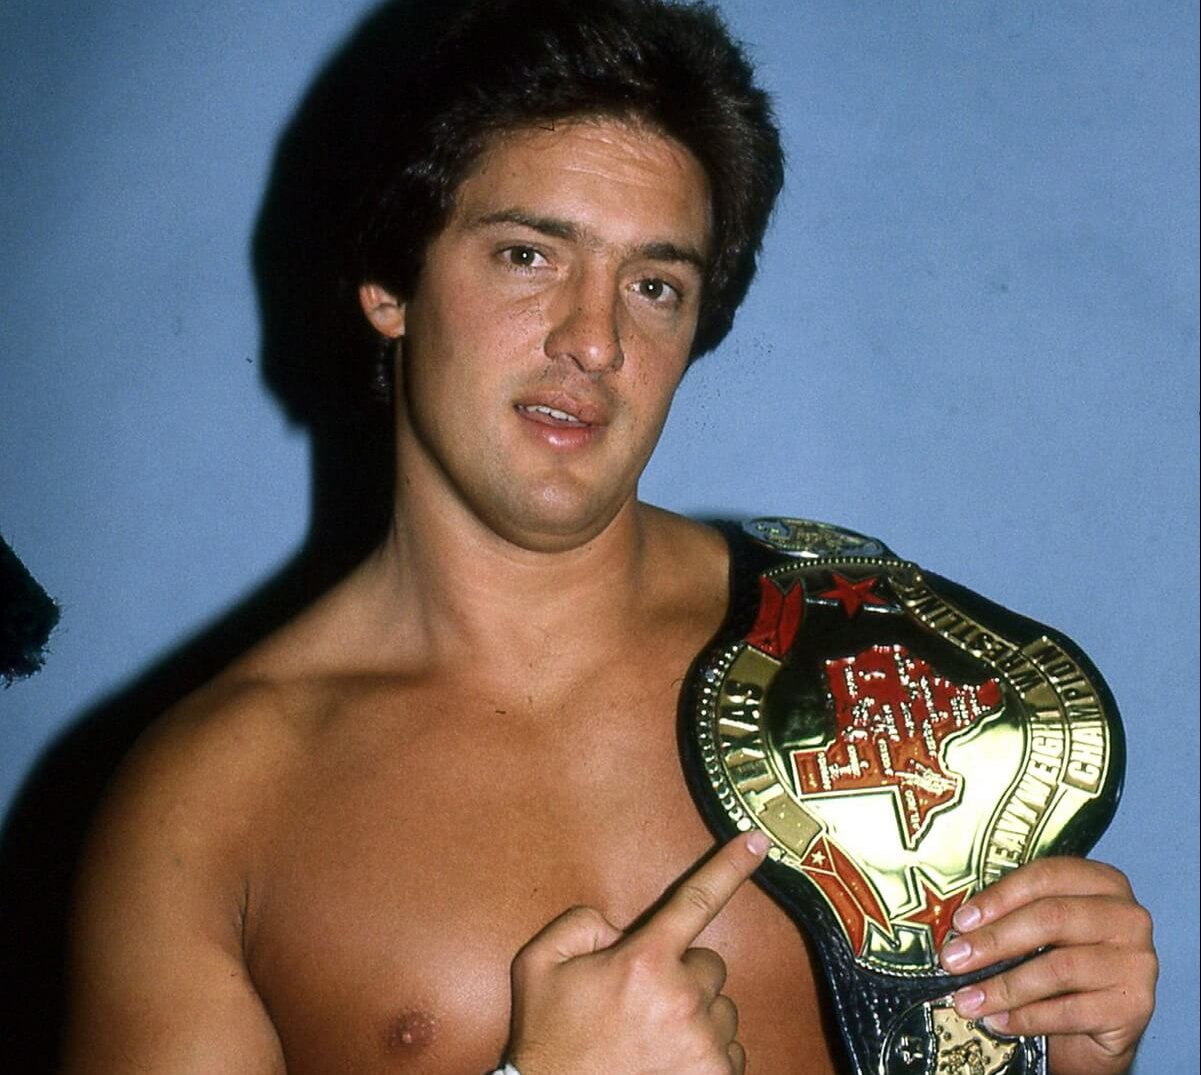 """""""Don't attempt to adjust your sets. What you see is real, the most gorgeous human being on this earth."""" – Gino Hernandez"""